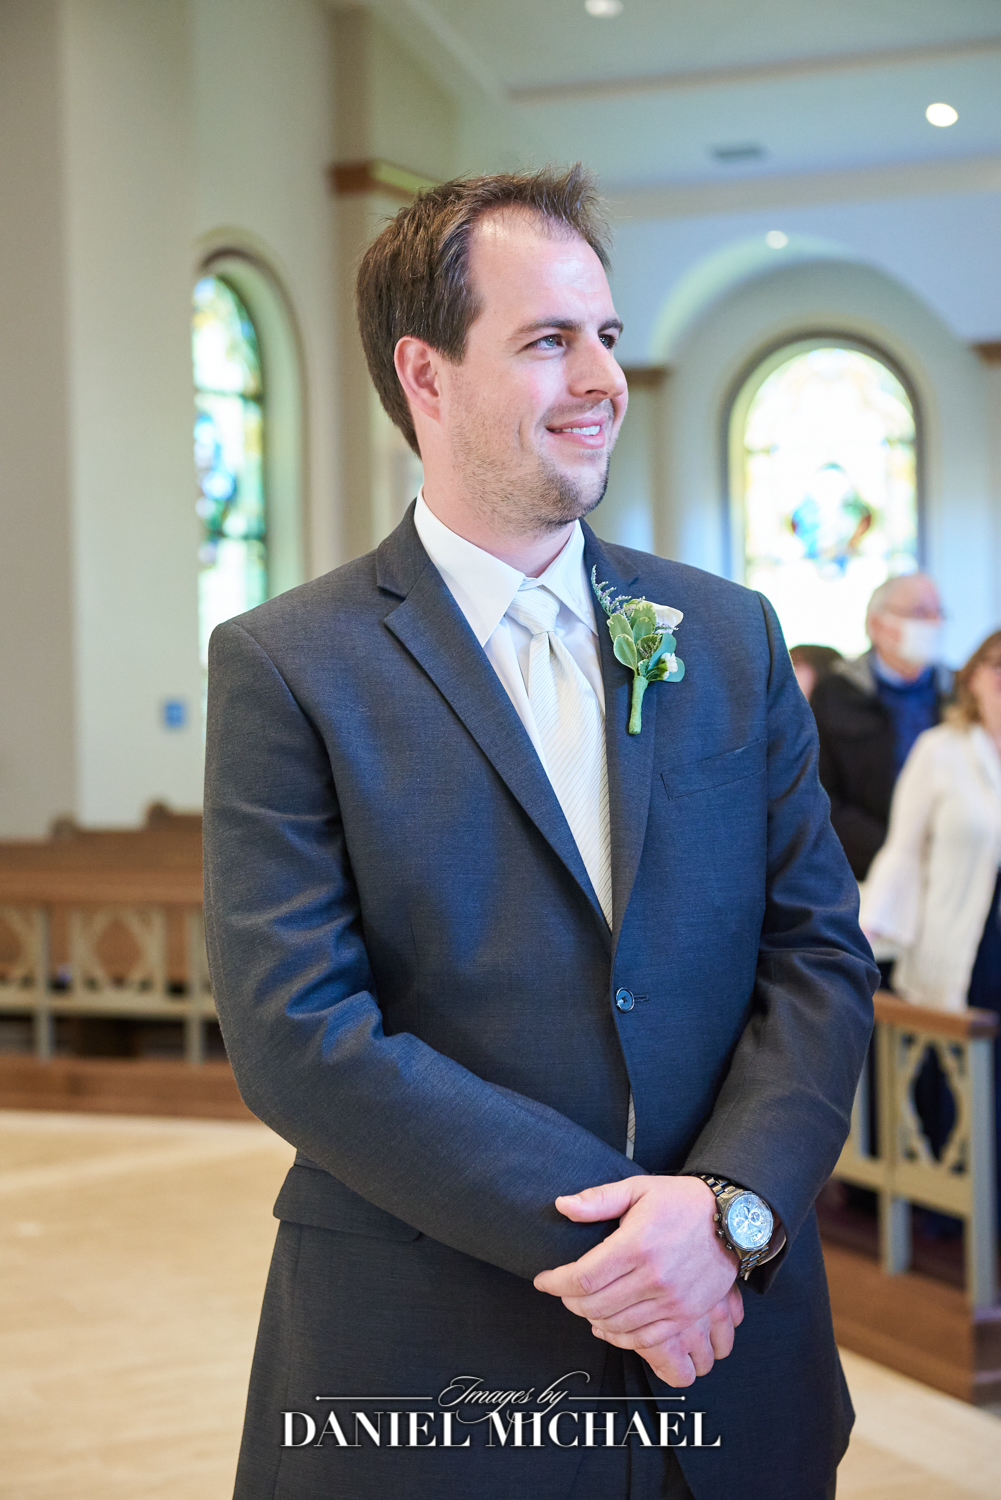 Photographer catching groom's expression as Bride Walks